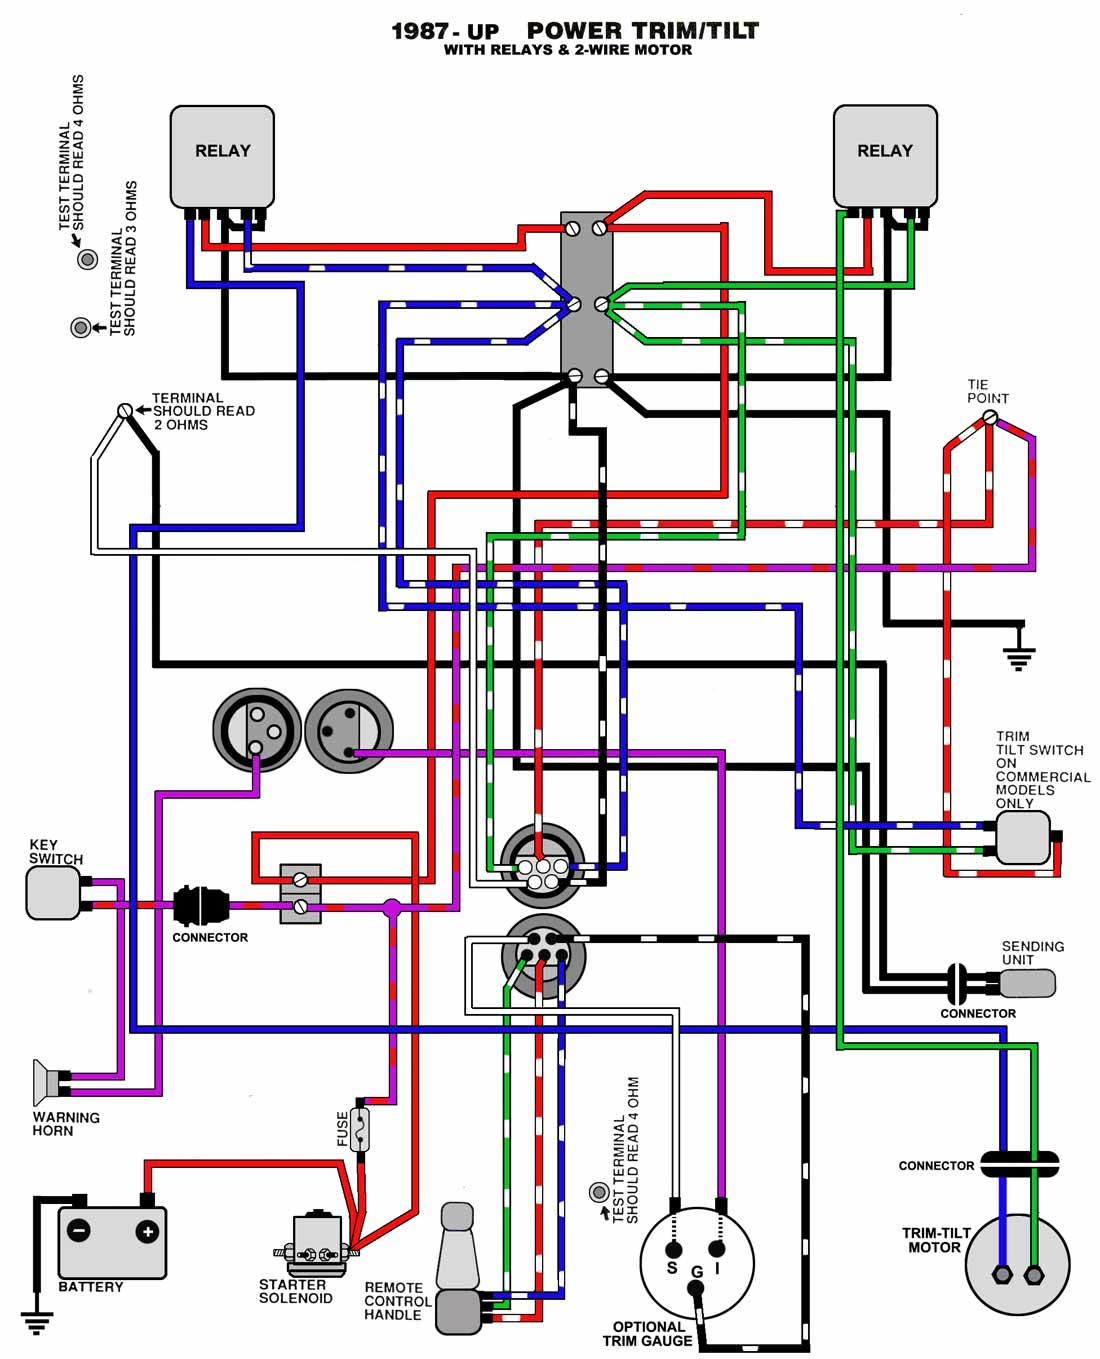 TnT_87_UP mastertech marine evinrude johnson outboard wiring diagrams Boat Ignition Switch Wiring Diagram at crackthecode.co